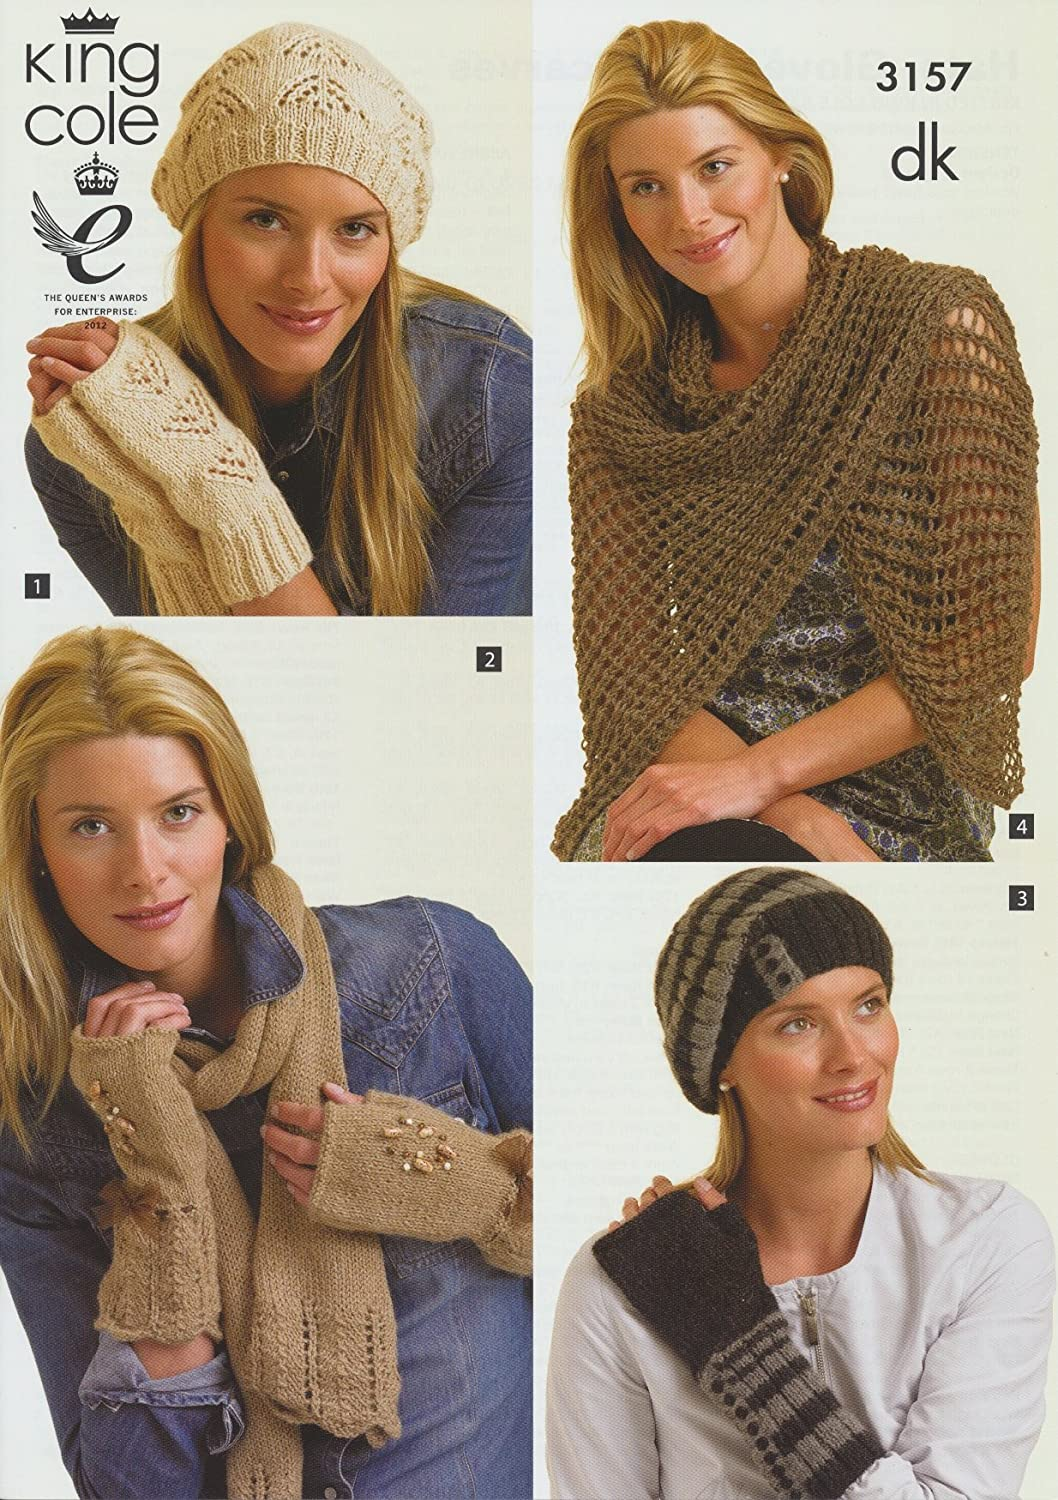 King Cole Ladies DK Knitting Pattern Womens Winter Hats, Gloves & Scarves In Four Designs